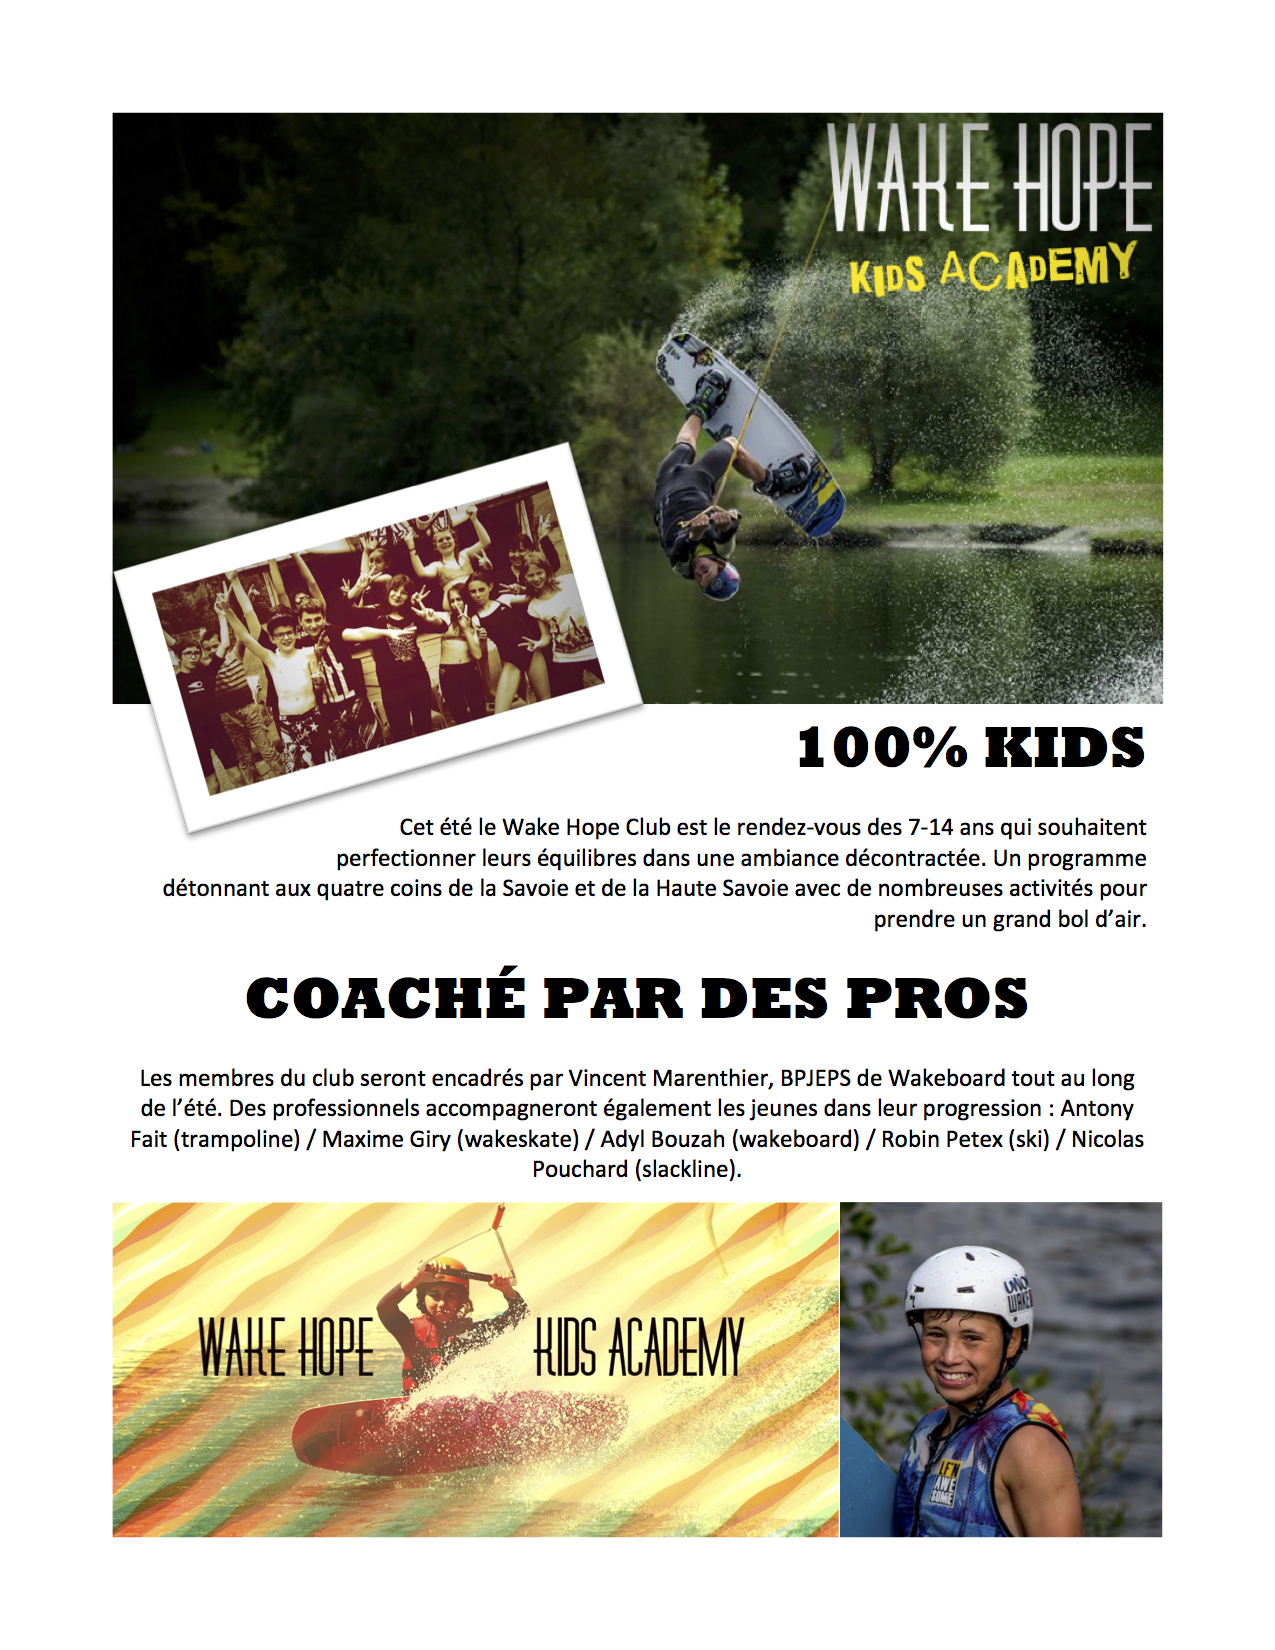 Wake Hope Kids Academy : Un club 100% kids